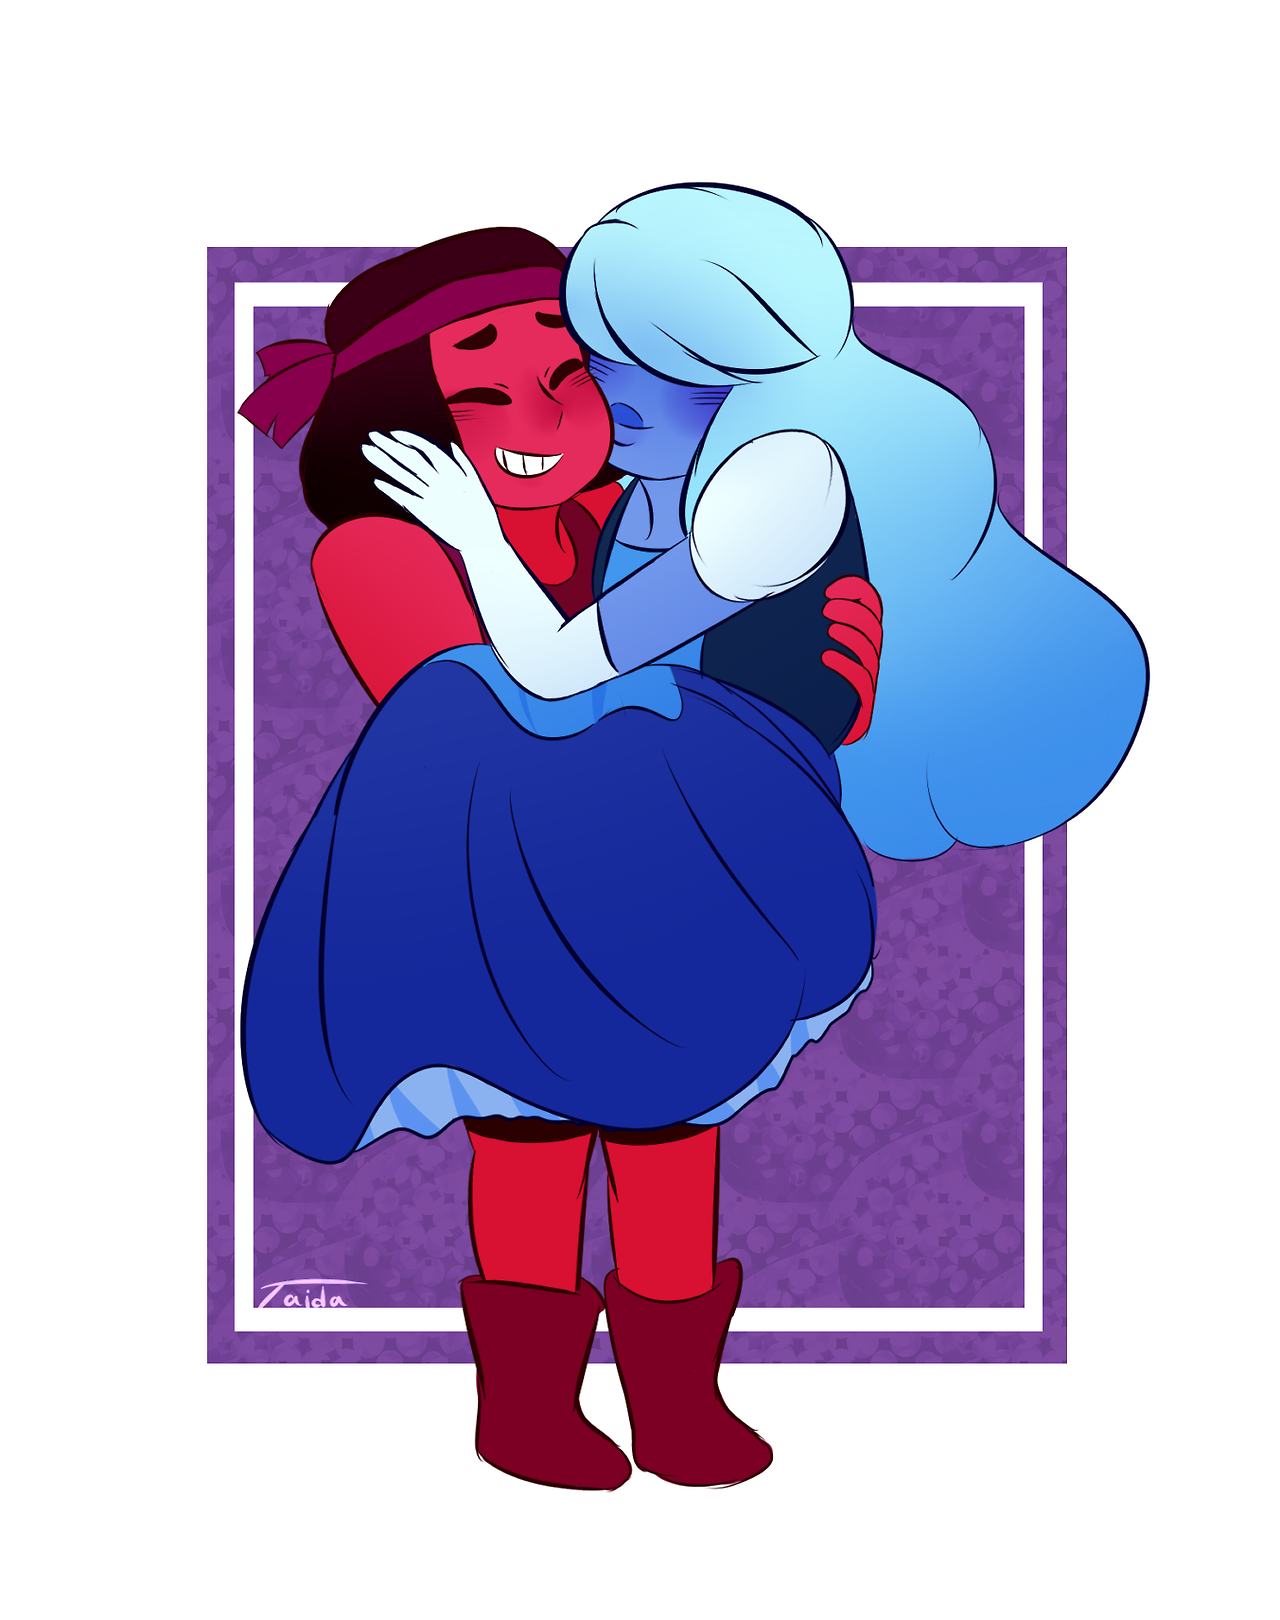 Ruby and Sapphire commission for my buddy @welcome-to-witchcraft !